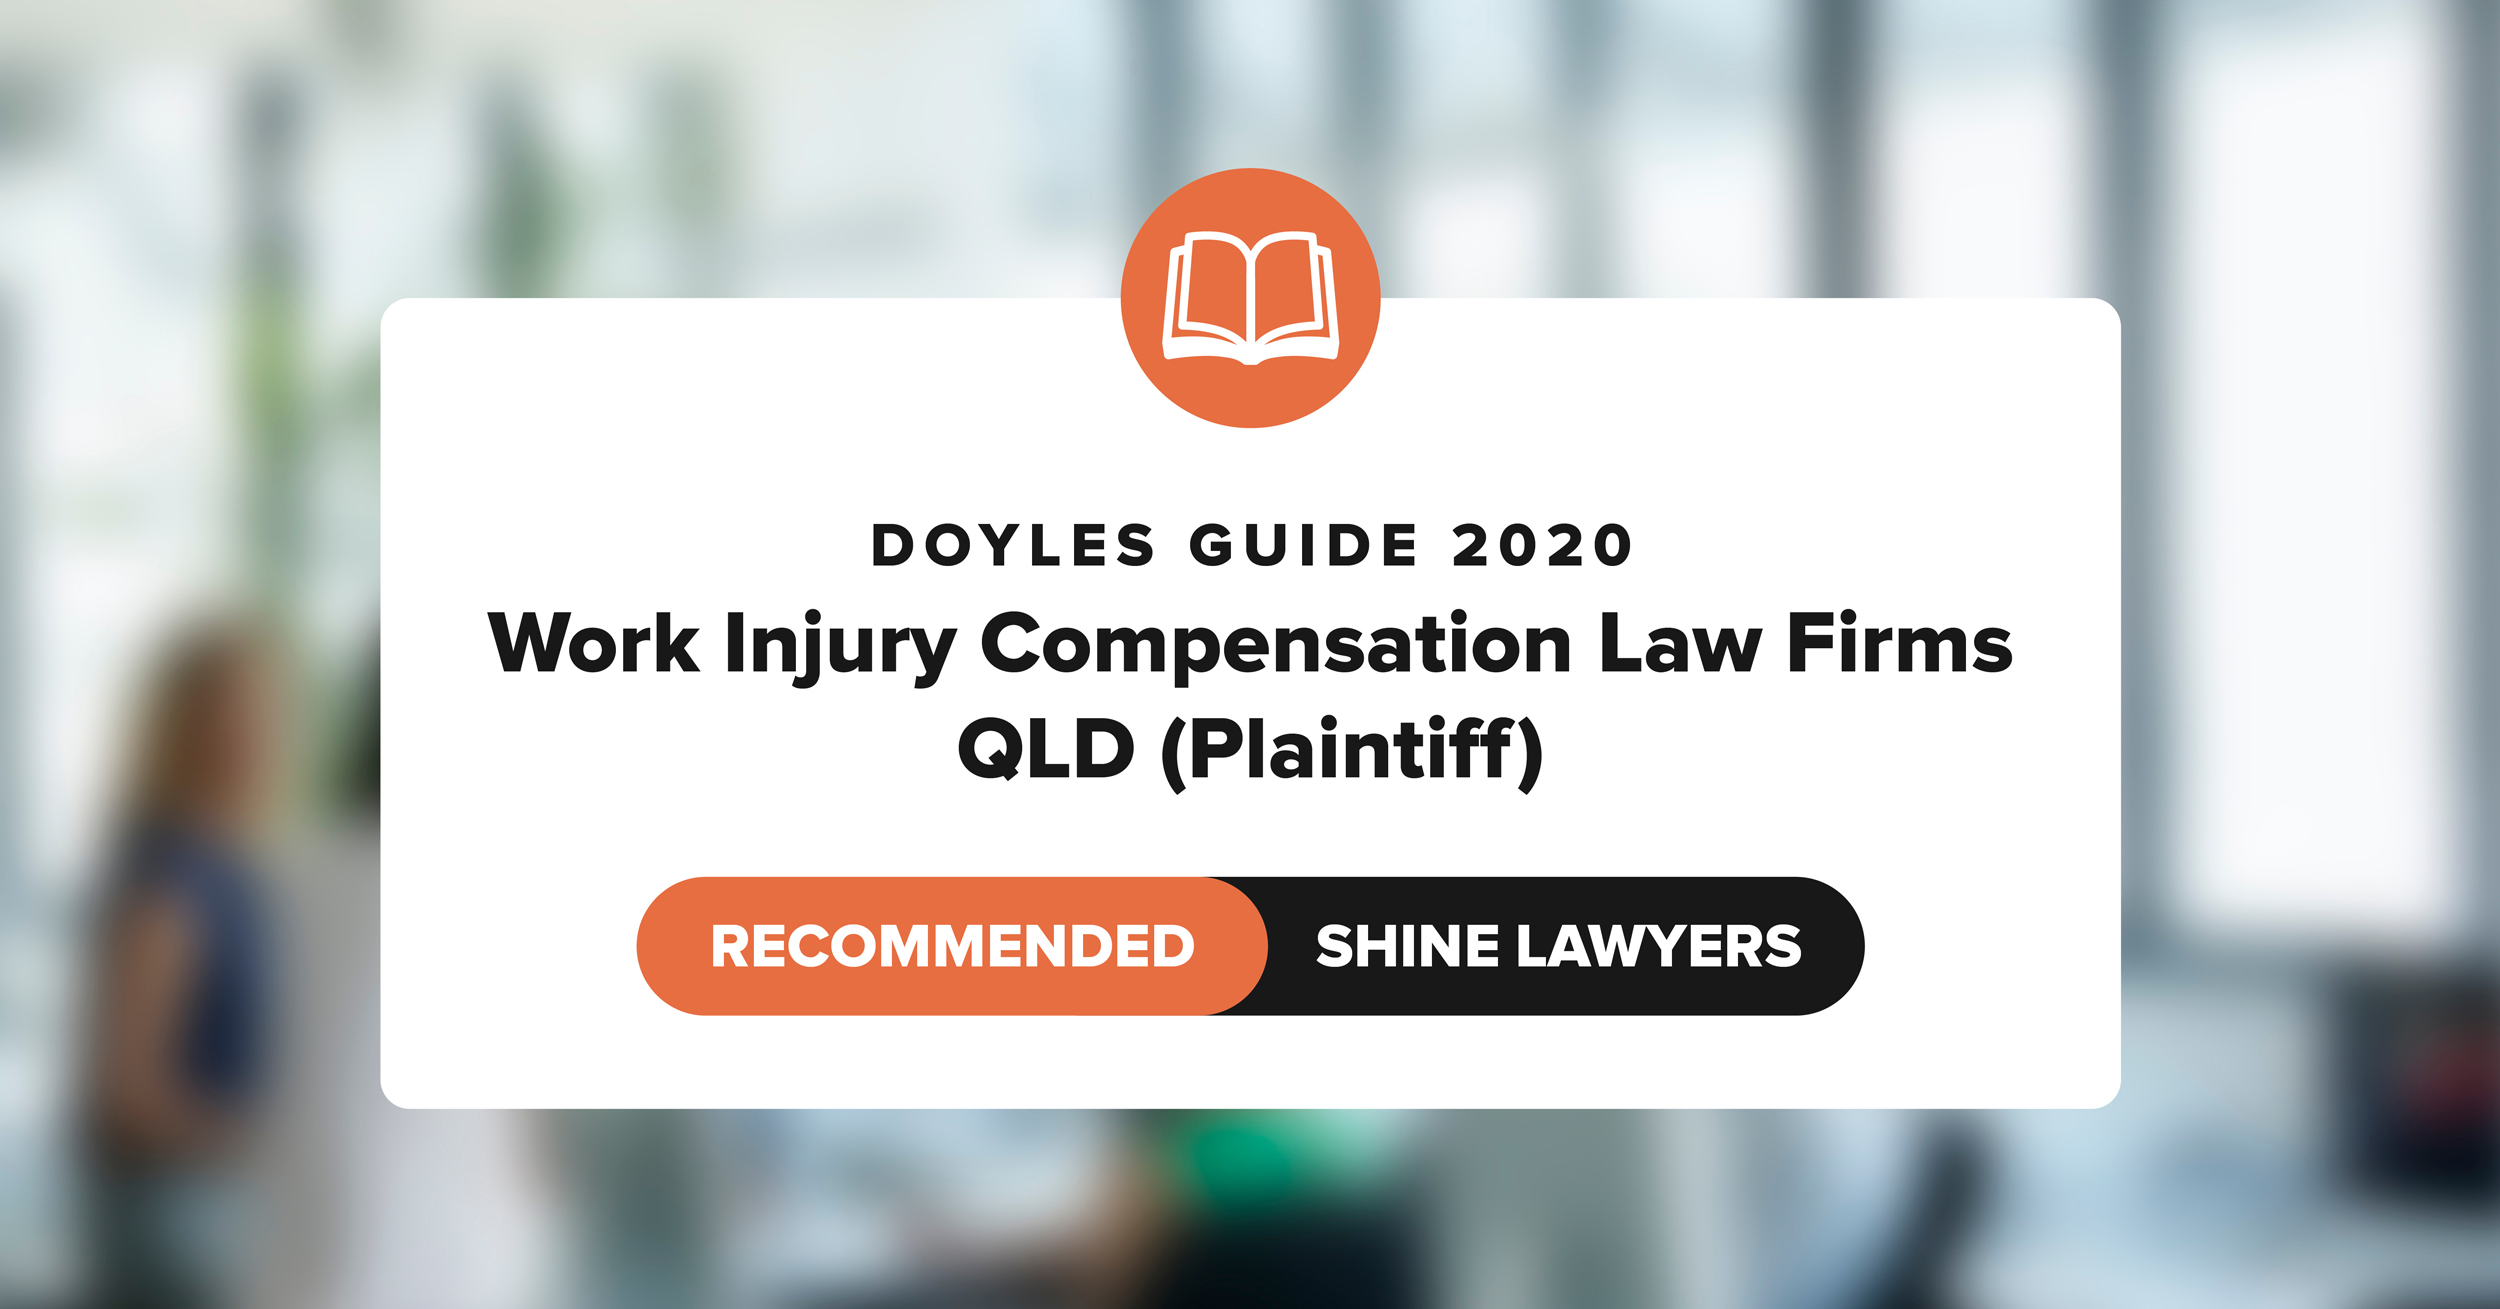 Doyles Guide 2020 Recommended Work Injury Compensation Law Firm QLD